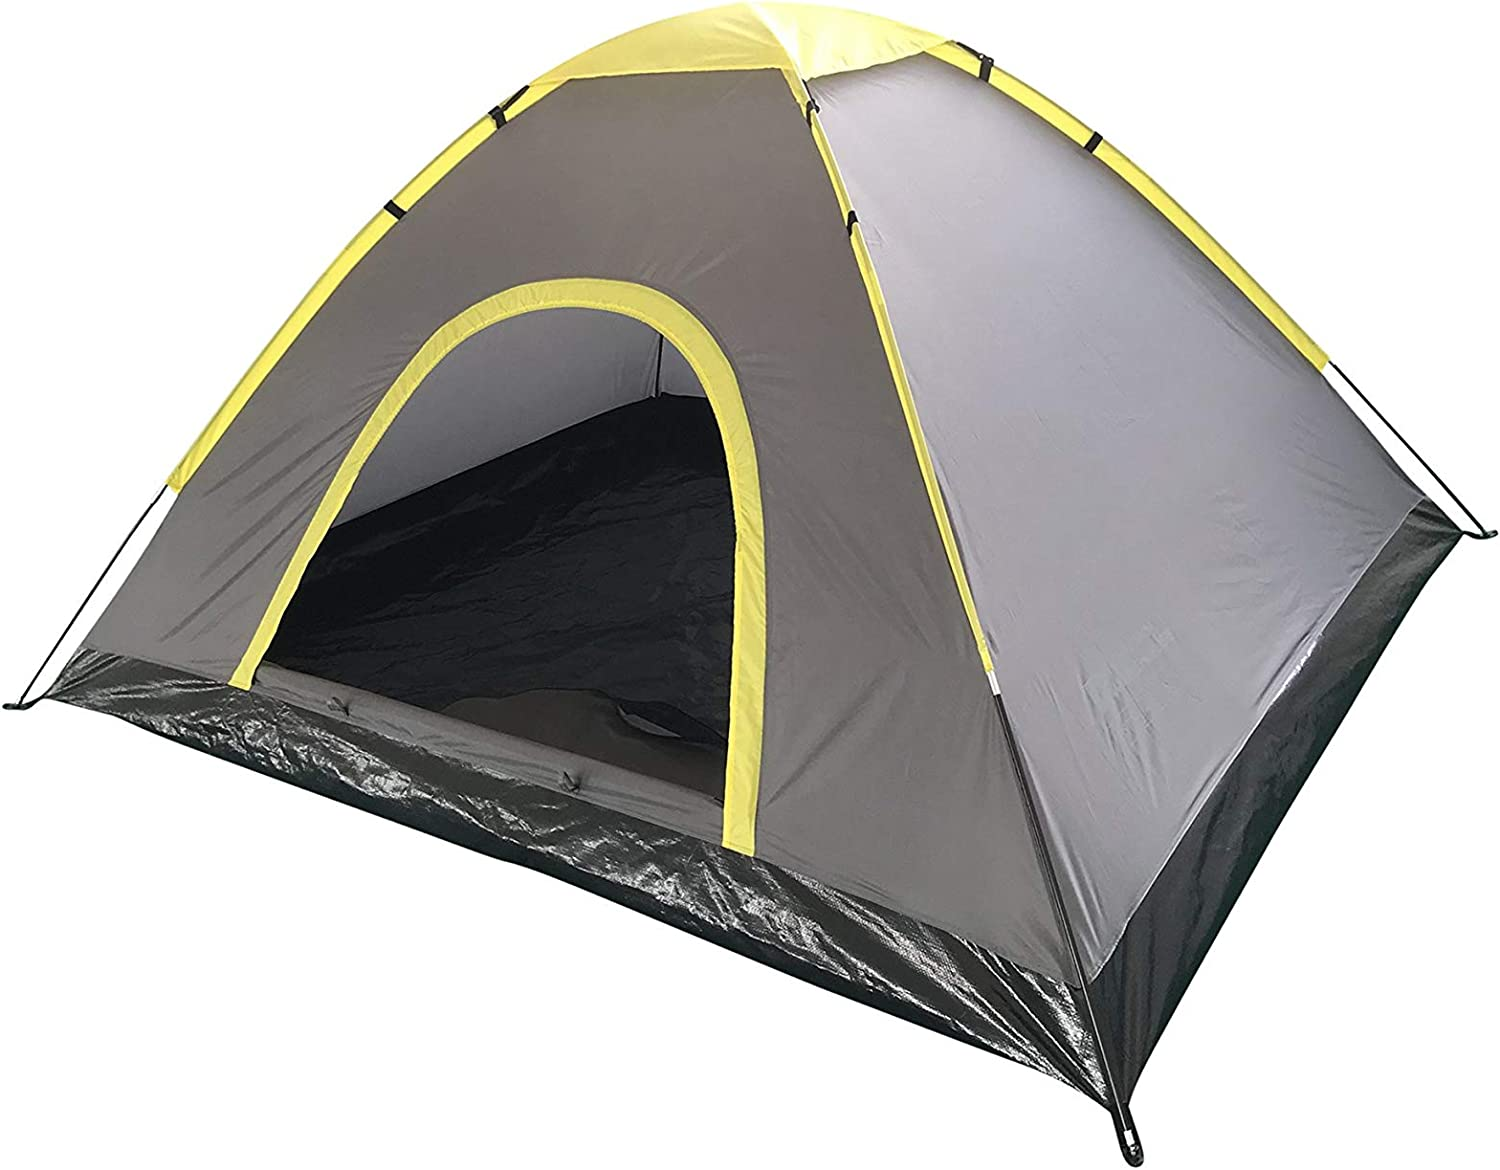 Mountain Warehouse Festival Fun 4 Man Tent Water Resistant Sleeping Tent For Camping, Sun, Beach